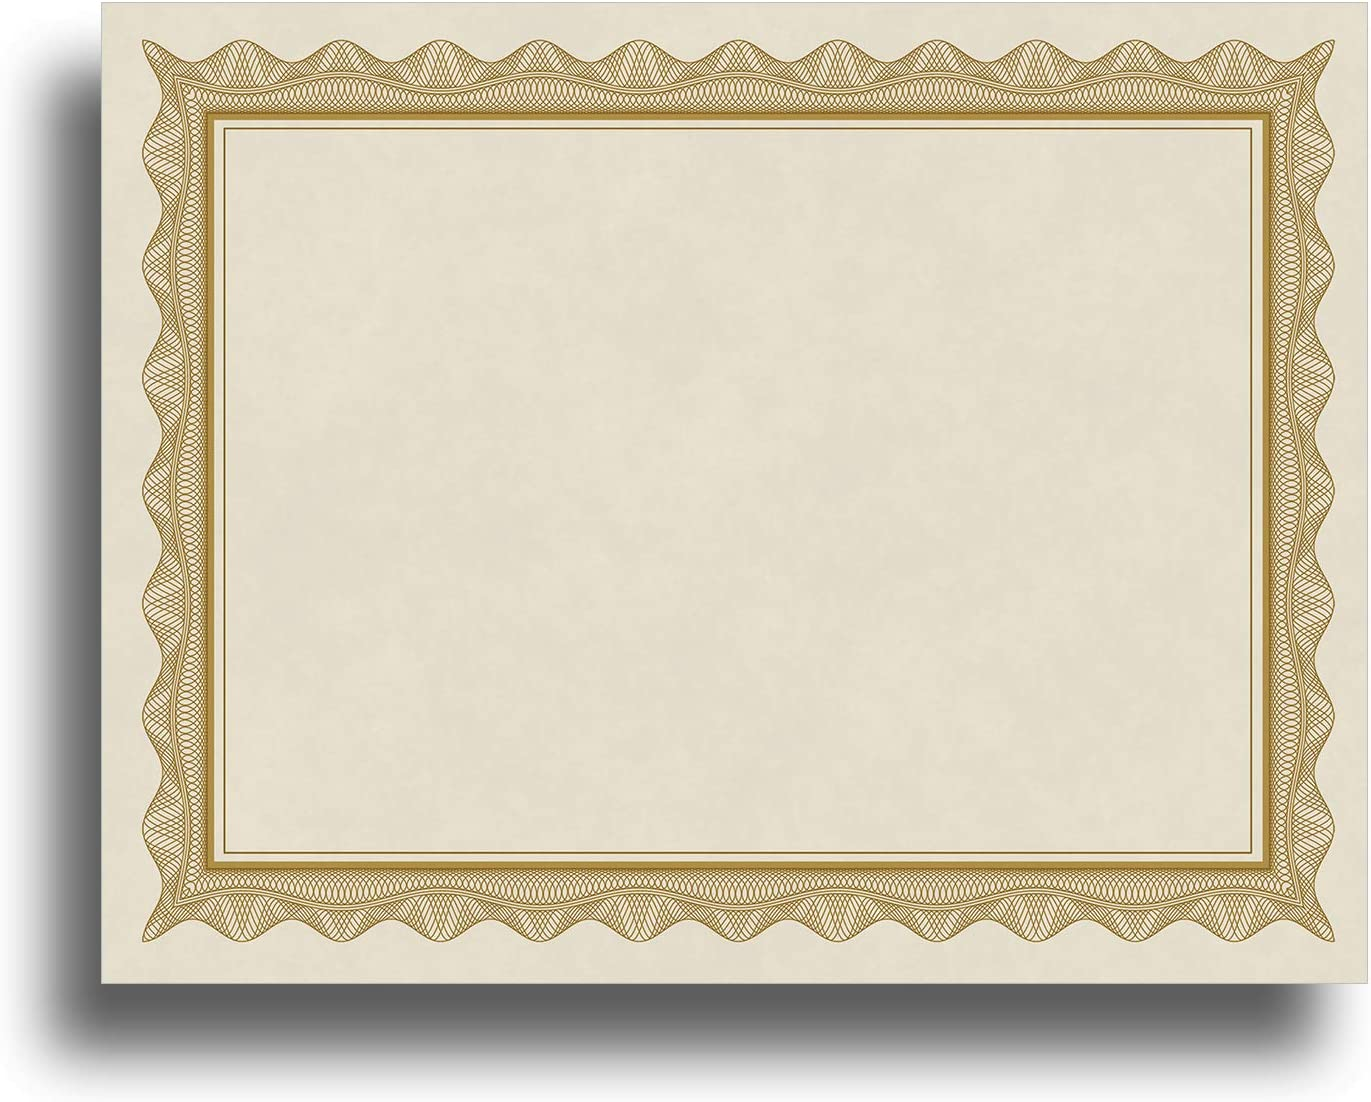 """Blank Parchment Certificate Paper for Awards - Works with Inkjet/Laser Printers - Measures 8 1/2"""" x 11"""" - Gold Border - 250 Sheet Pack"""